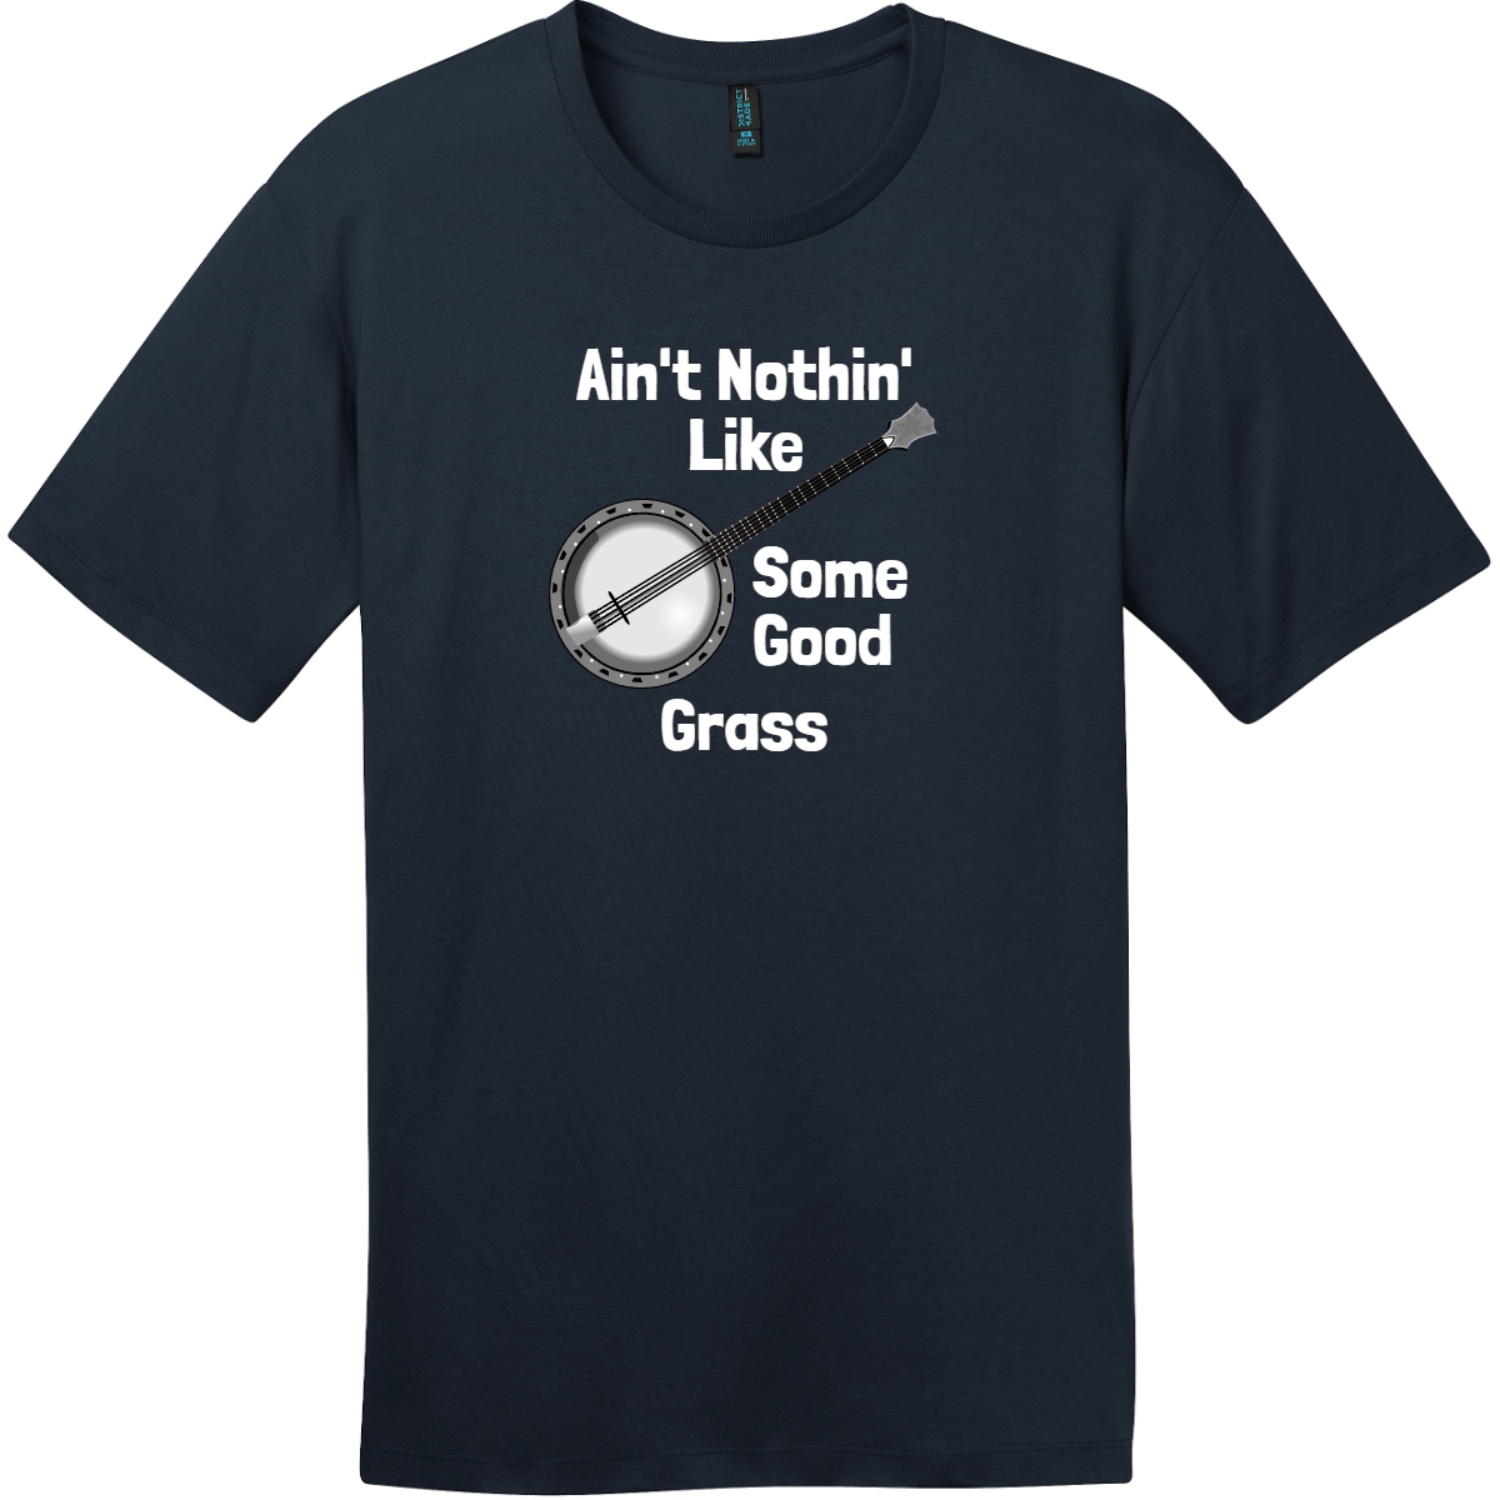 Aint Nothin Like Some Good Grass T-Shirt New Navy District Perfect Weight Tee DT104